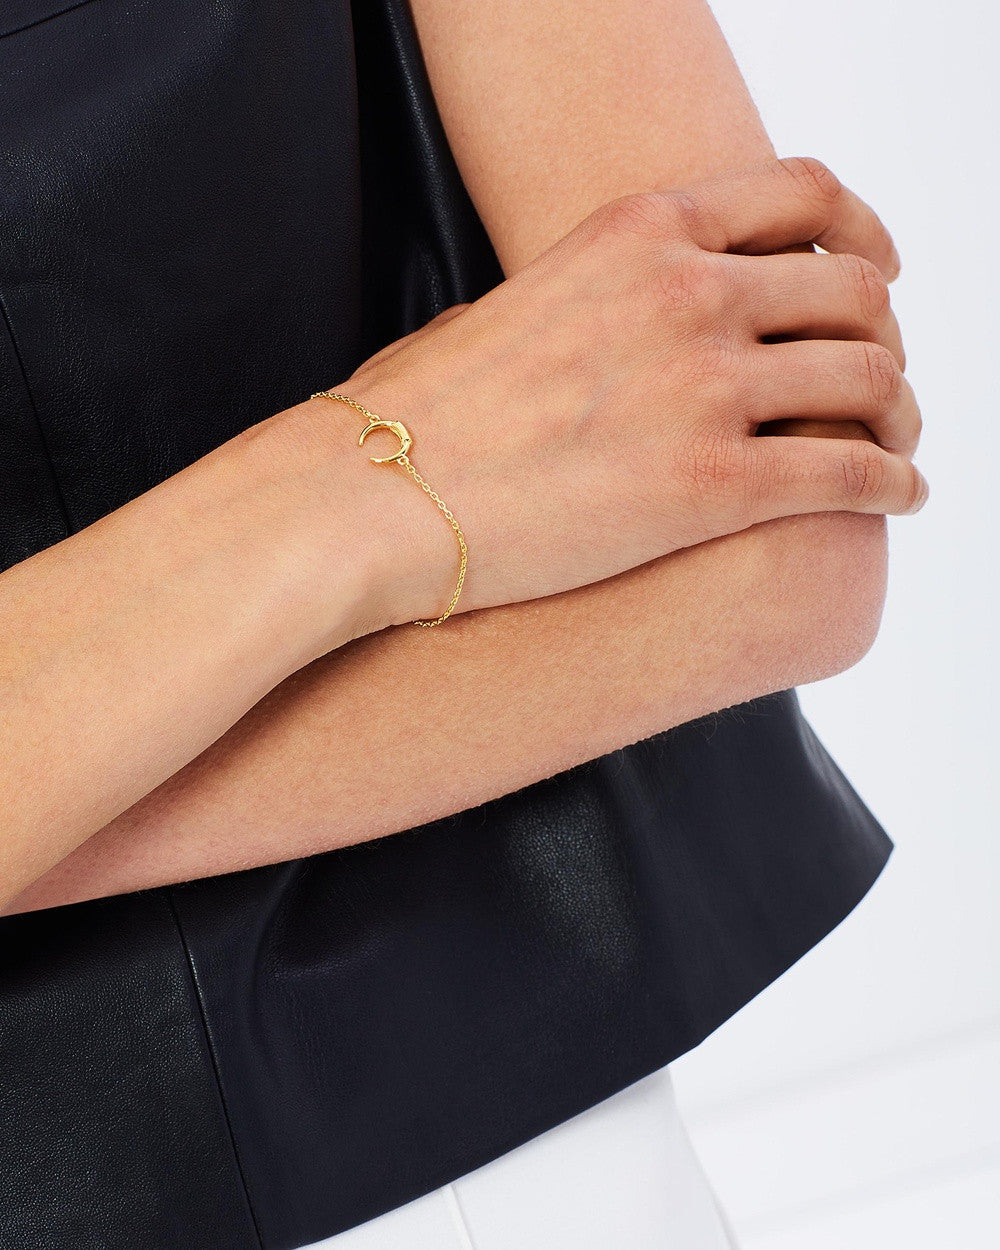 Tusk Mini Bracelet - Gold